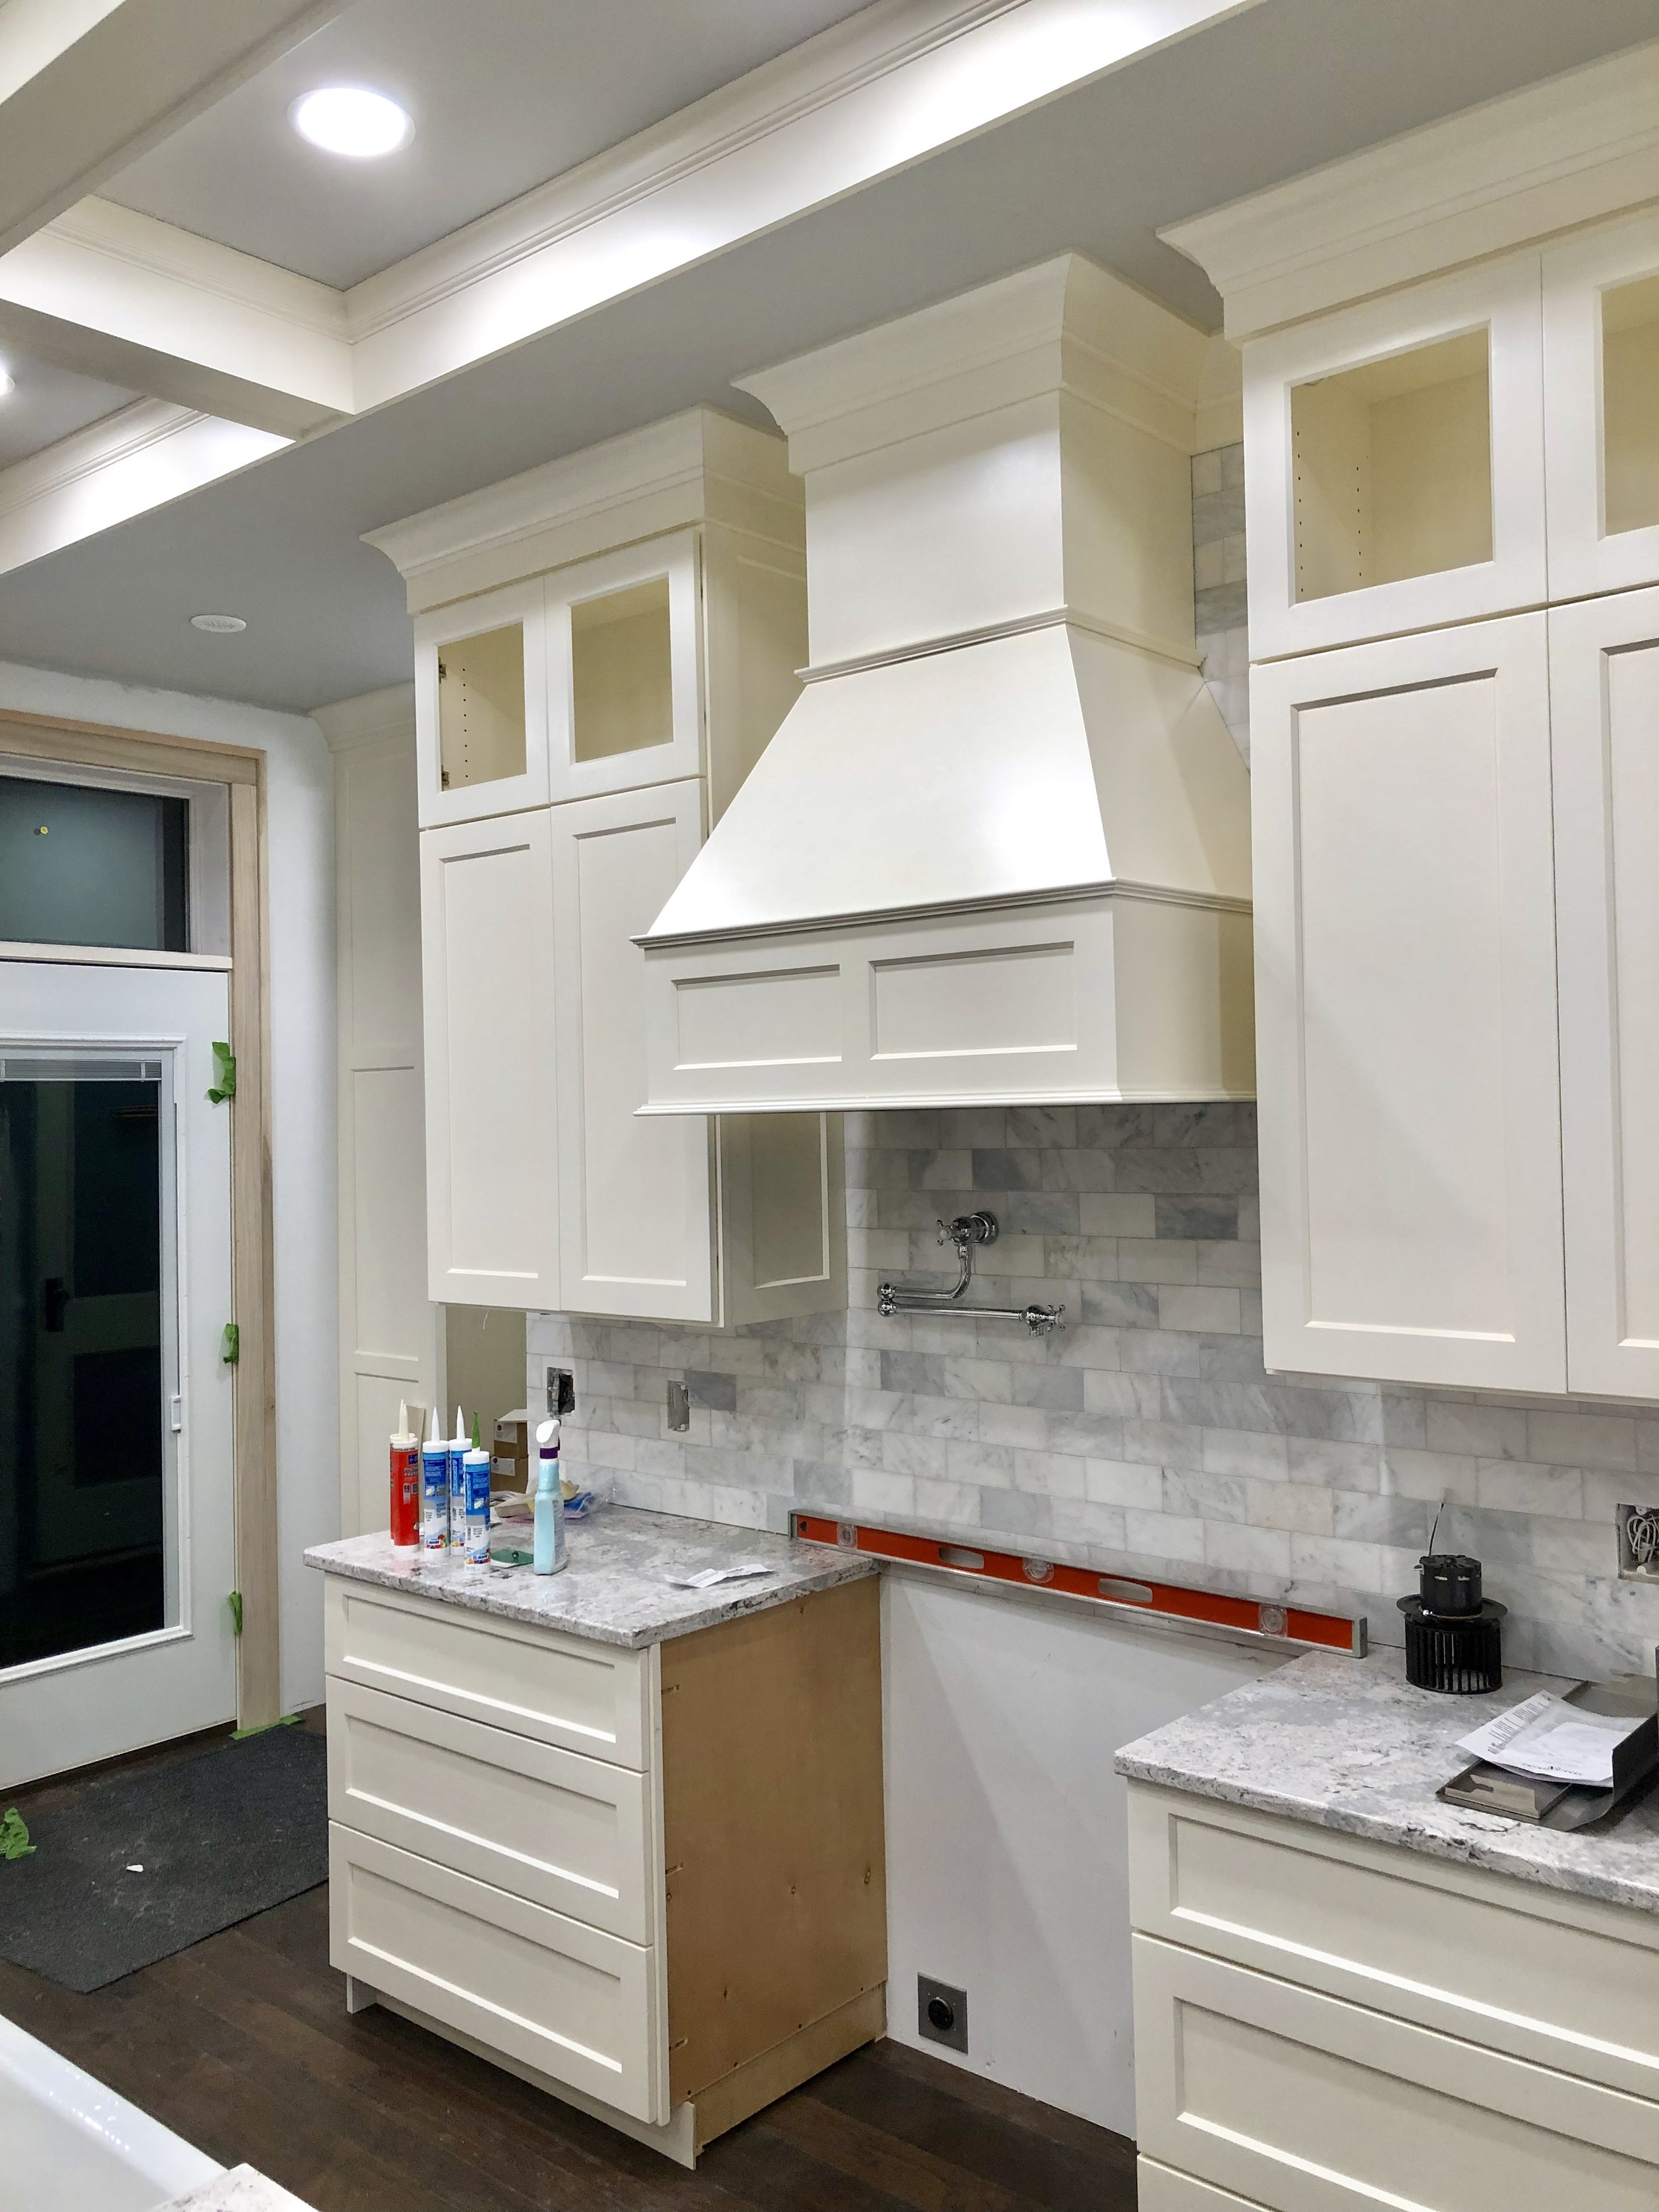 White kitchen hoods, and grout, and appliances (almost ...